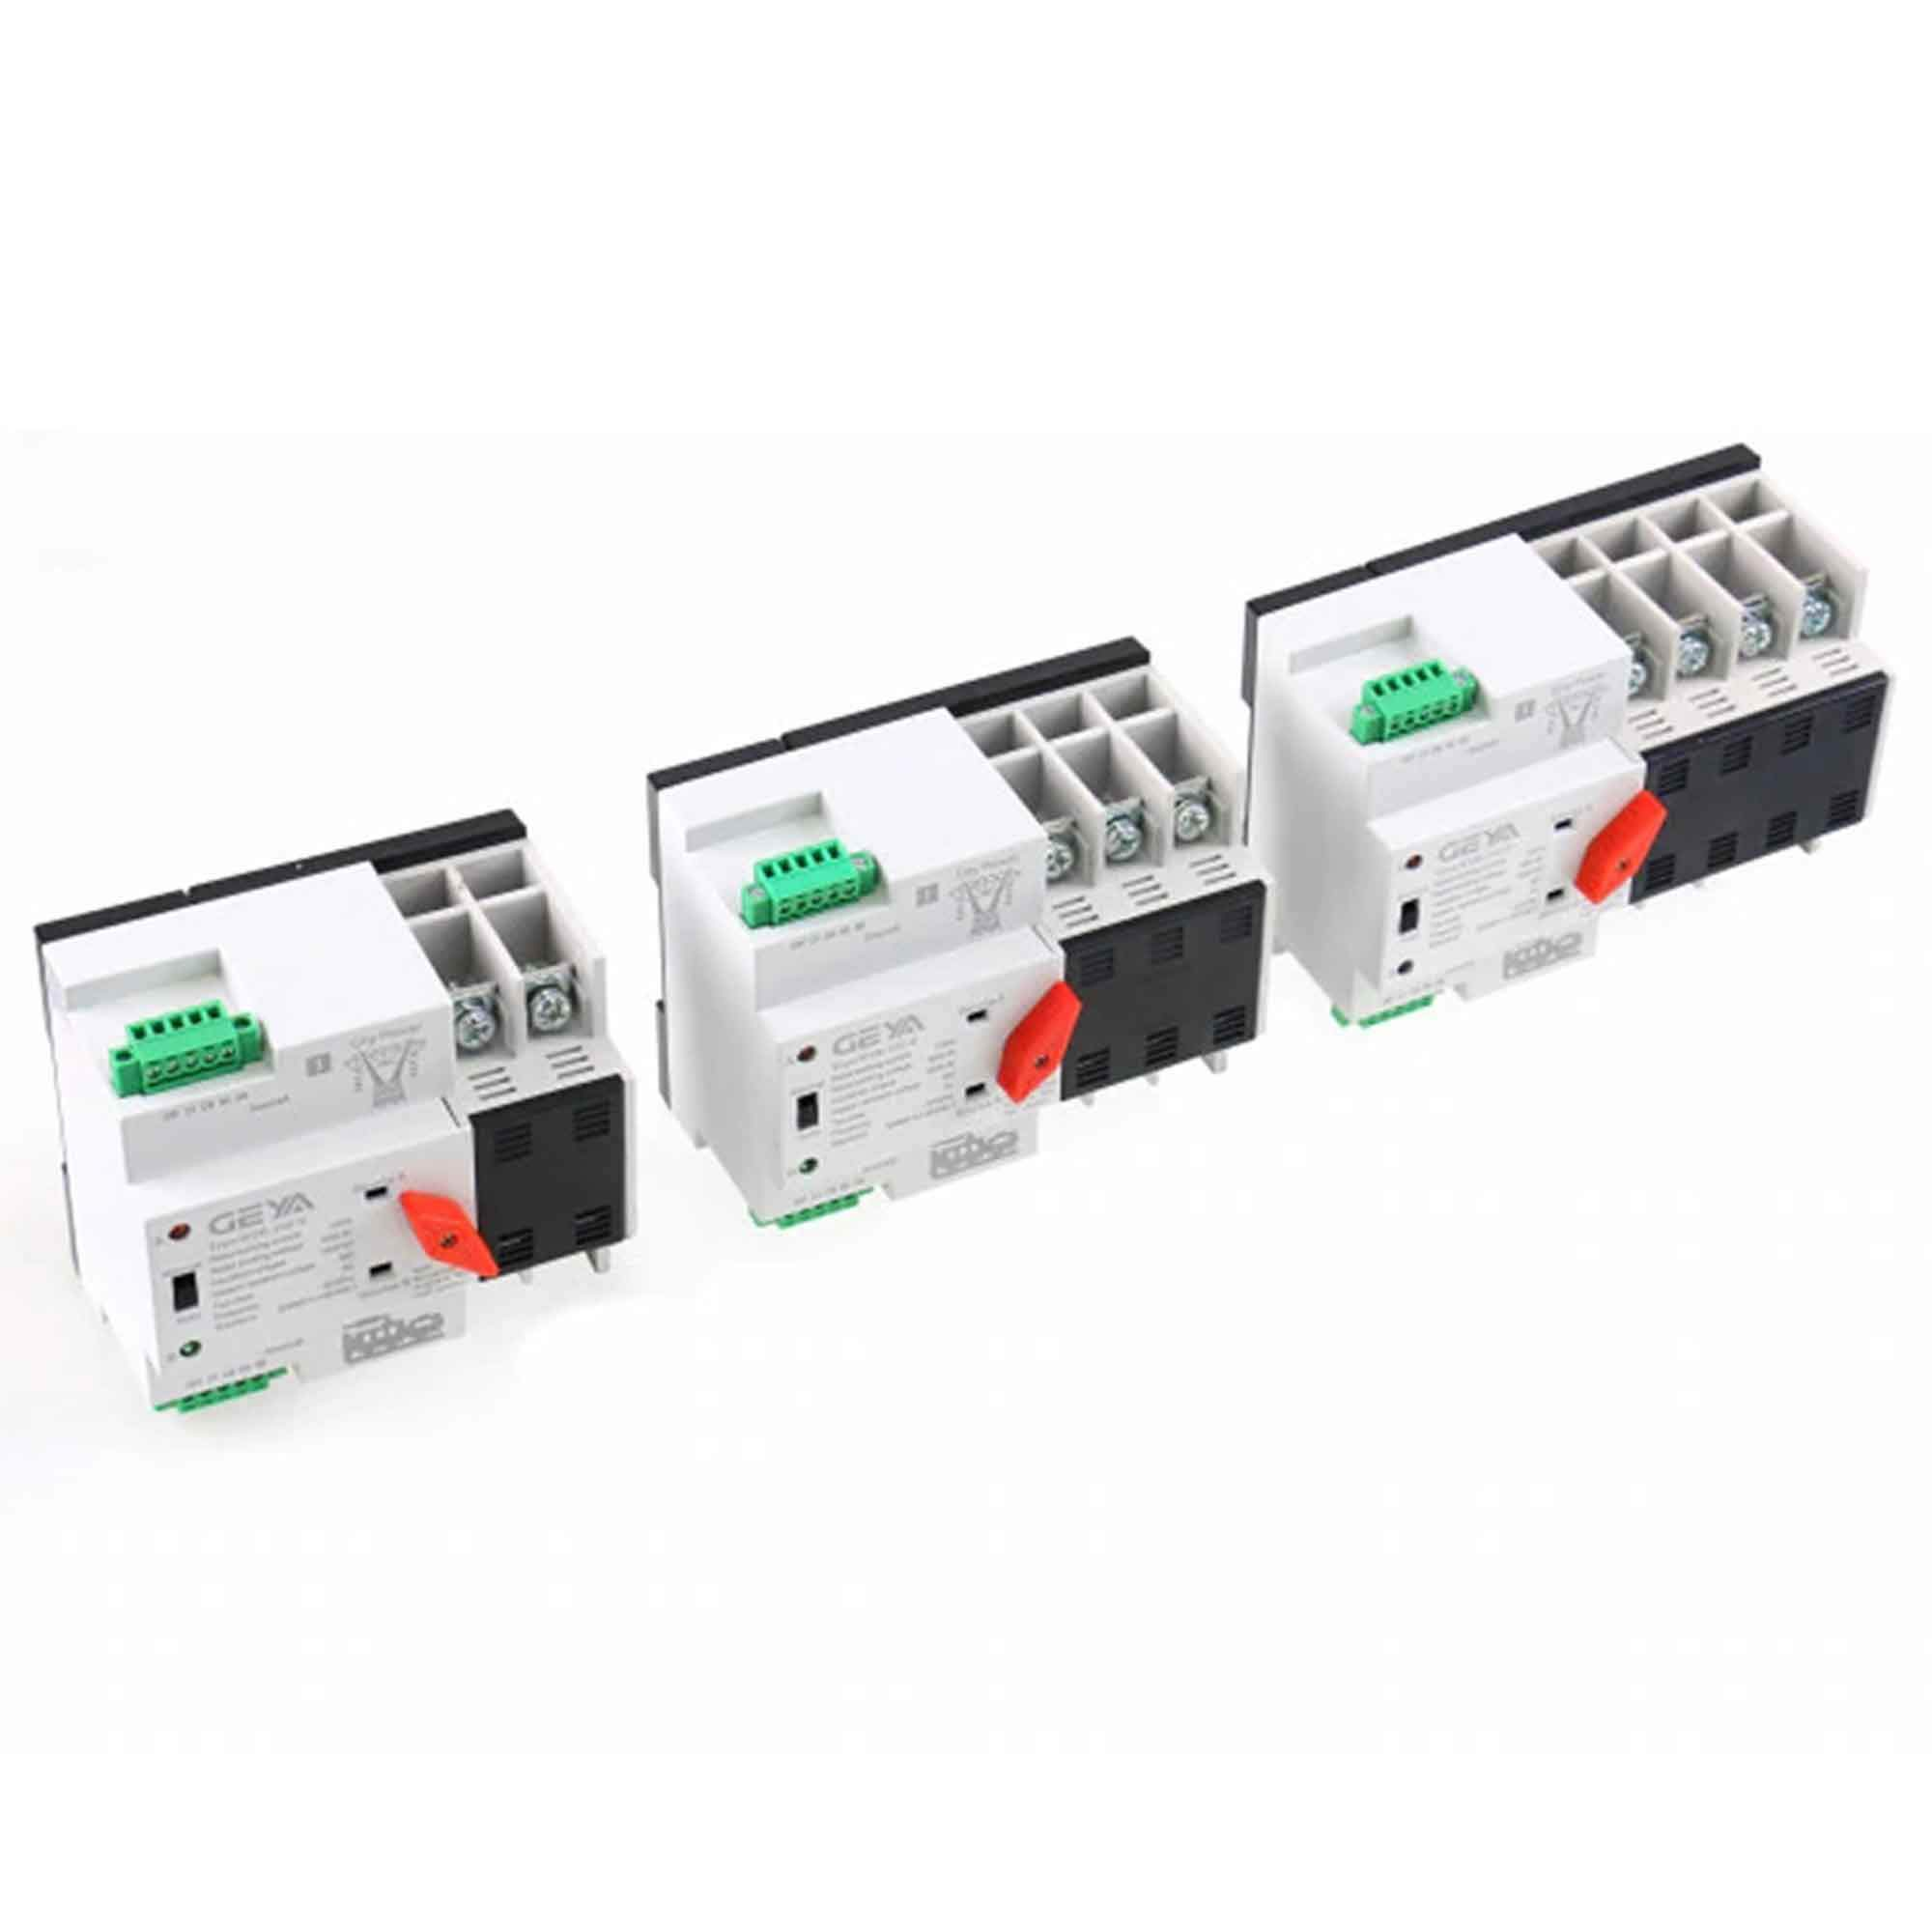 GAEYAELE W2R Mini ATS 4P Automatic Transfer Switch Controller Electrical Type ATS Max 100A 4POLE (W2R-4P 100A) by GAEYAELE (Image #8)